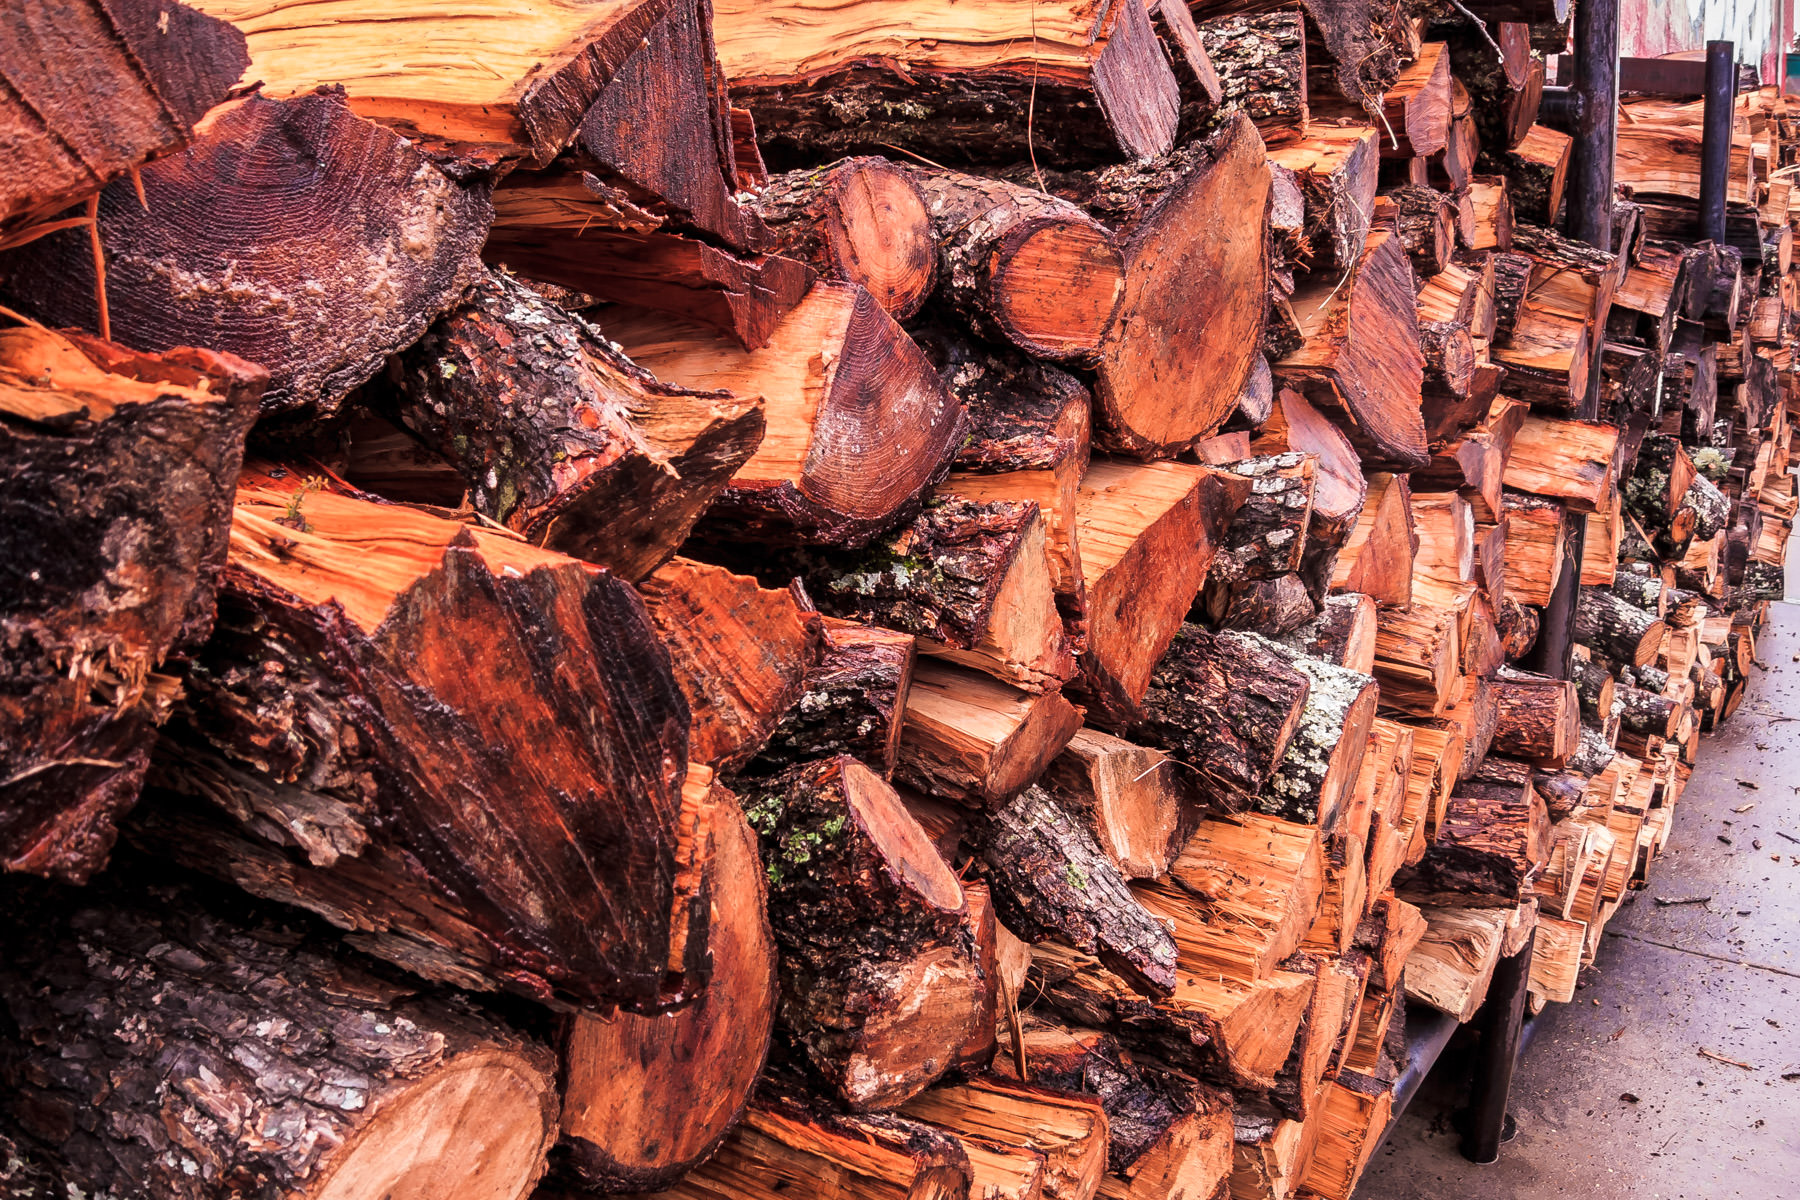 Firewood stacked in Jefferson, Texas.